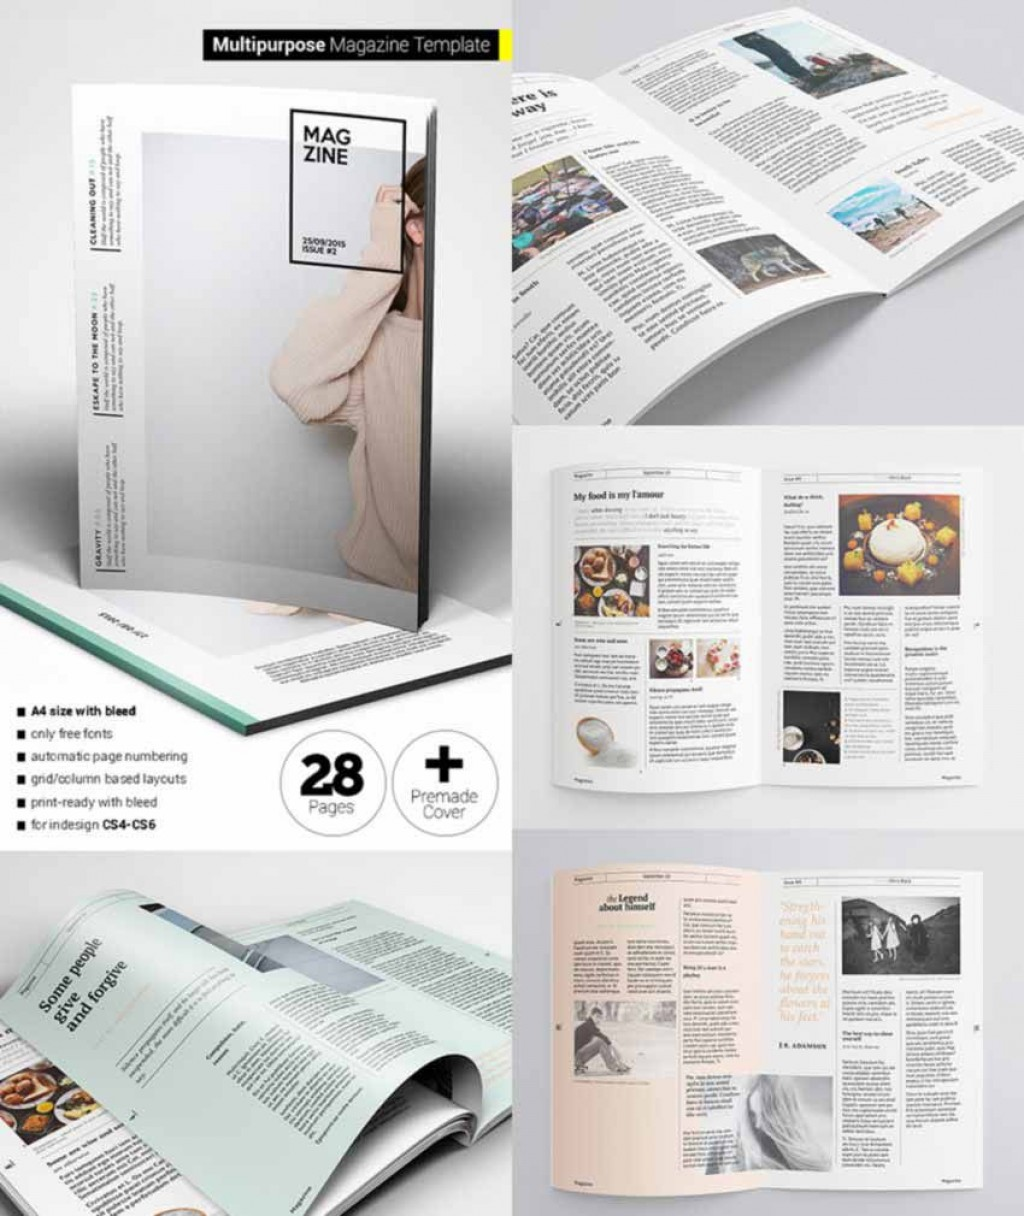 007 Archaicawful Free Magazine Layout Template High Resolution  Templates For Word Microsoft PowerpointLarge